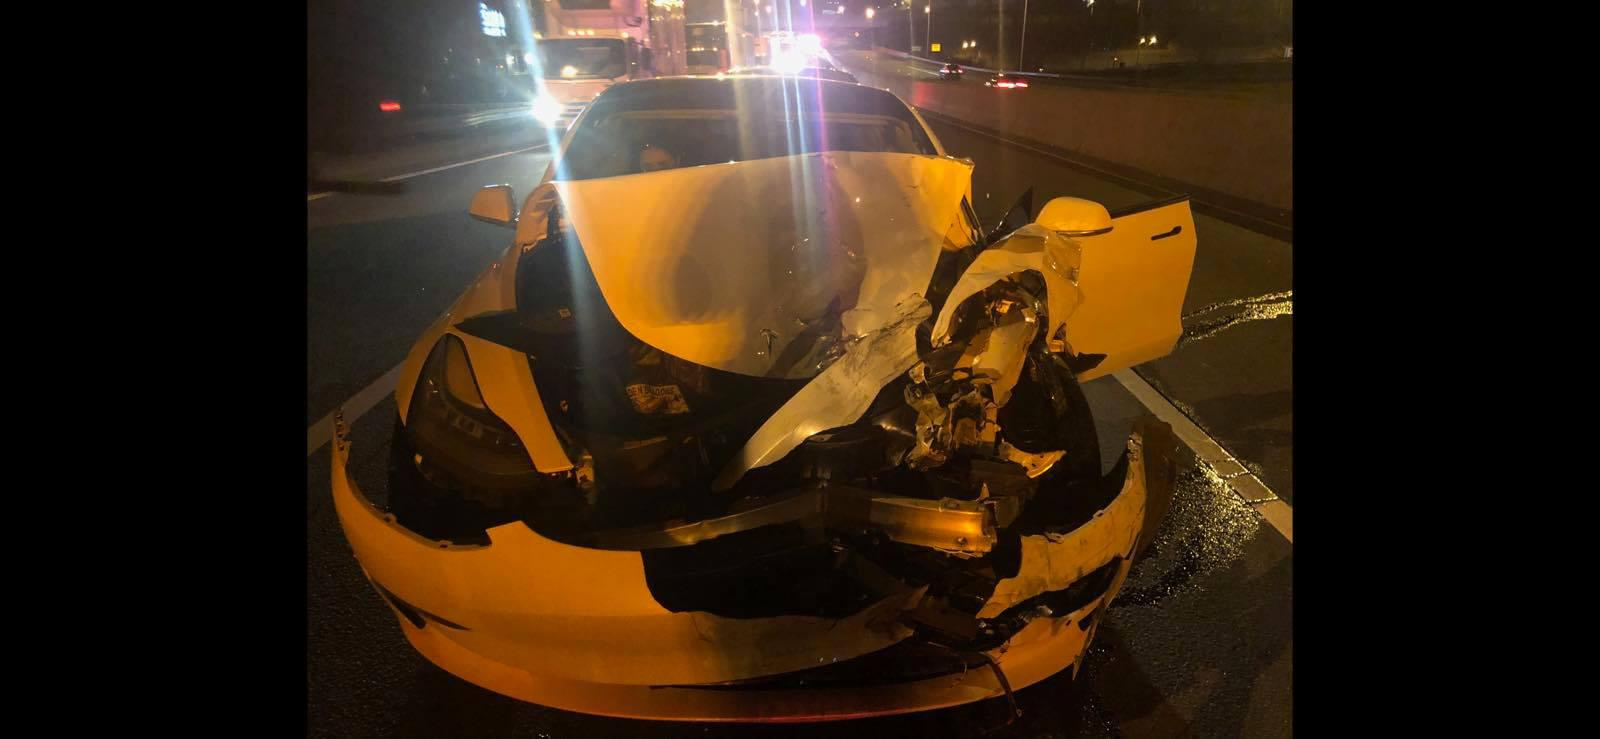 Police: Driver claims Tesla on auto-pilot when hitting 2 cars on I-95